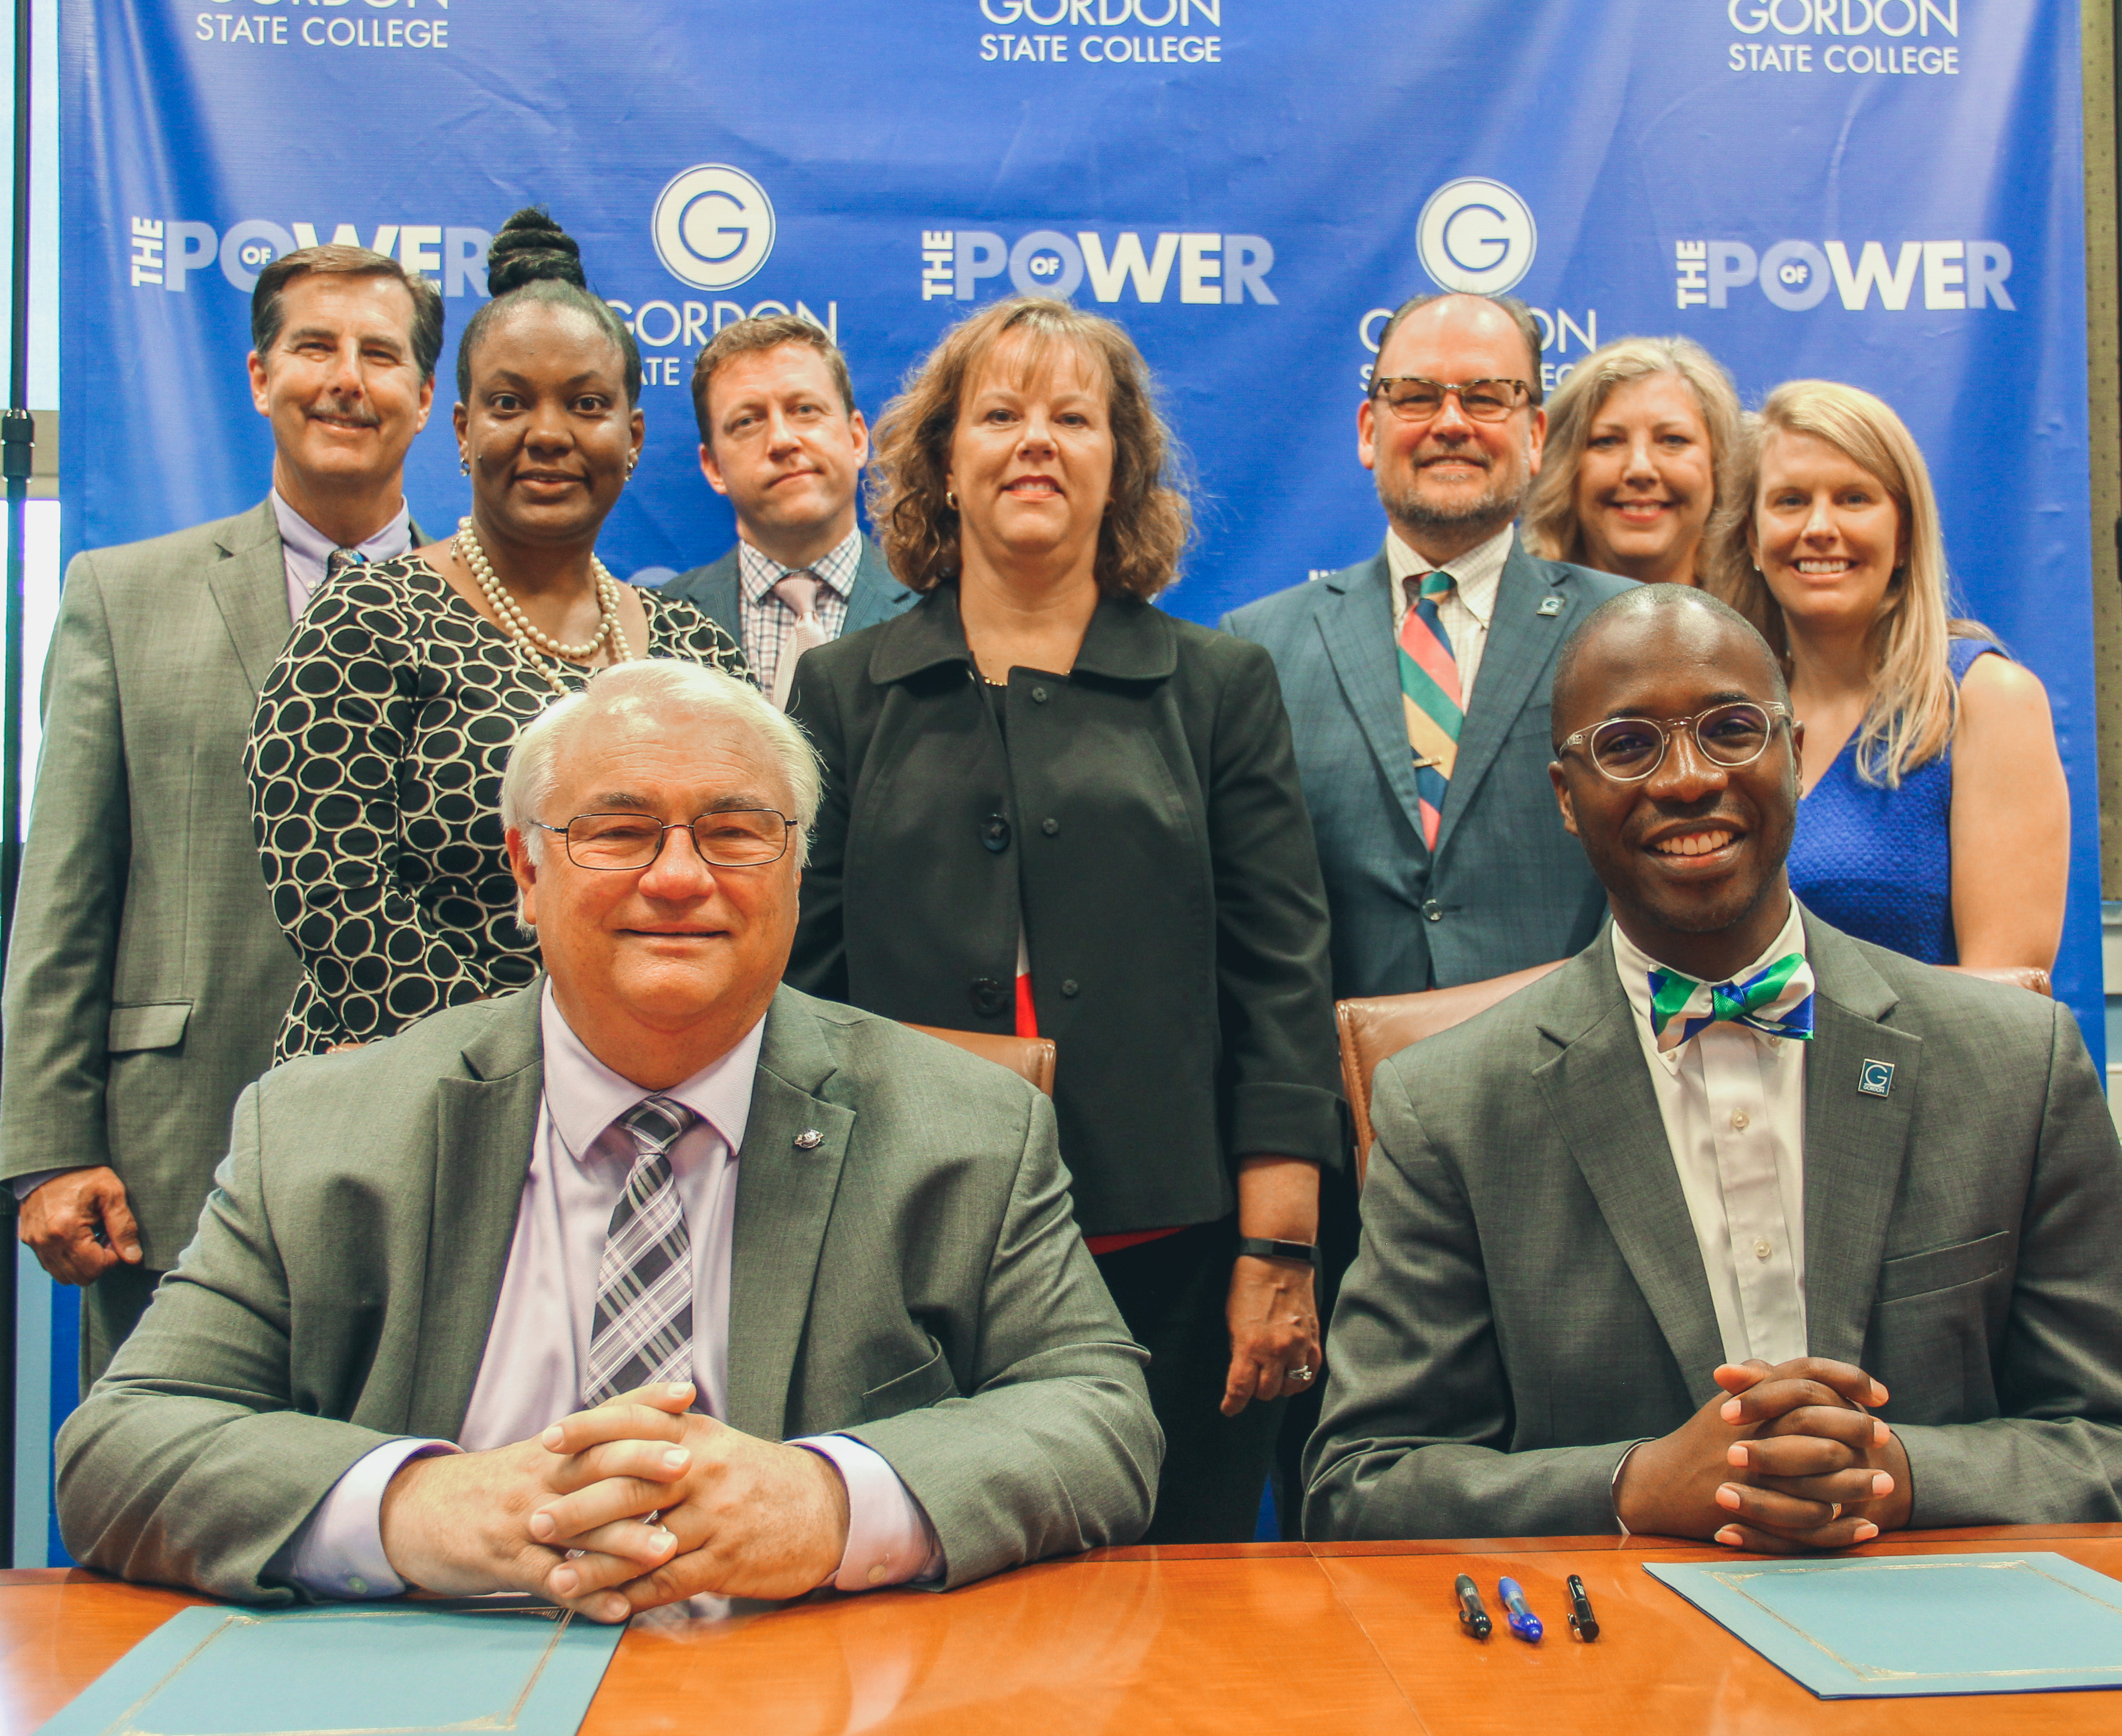 From front left, Griffin-Spalding County School System Superintendent Jim Smith joins Gordon State College President Dr. Kirk A. Nooks after signing the articulation agreement. Back row from left, Dr. Ric Calhoun, GSC Assistant Vice President for Innovative Education and Strategic Initiatives; Dr. Tiffany Taylor, GSCS Director of Strategic Talent Management; Dr. Joseph Jones, GSC Dean for School of Education; Stephanie Dobbins, GSCS Executive Director for Human Resources; Dr. C. Jeffrey Knighton, GSC Provost and Vice President for Academic Affairs; Dr. Julie Little, GSC Assistant Professor and Dr. Katie Wester-Neal, GSC Assistant Professor and PDS Program Director.